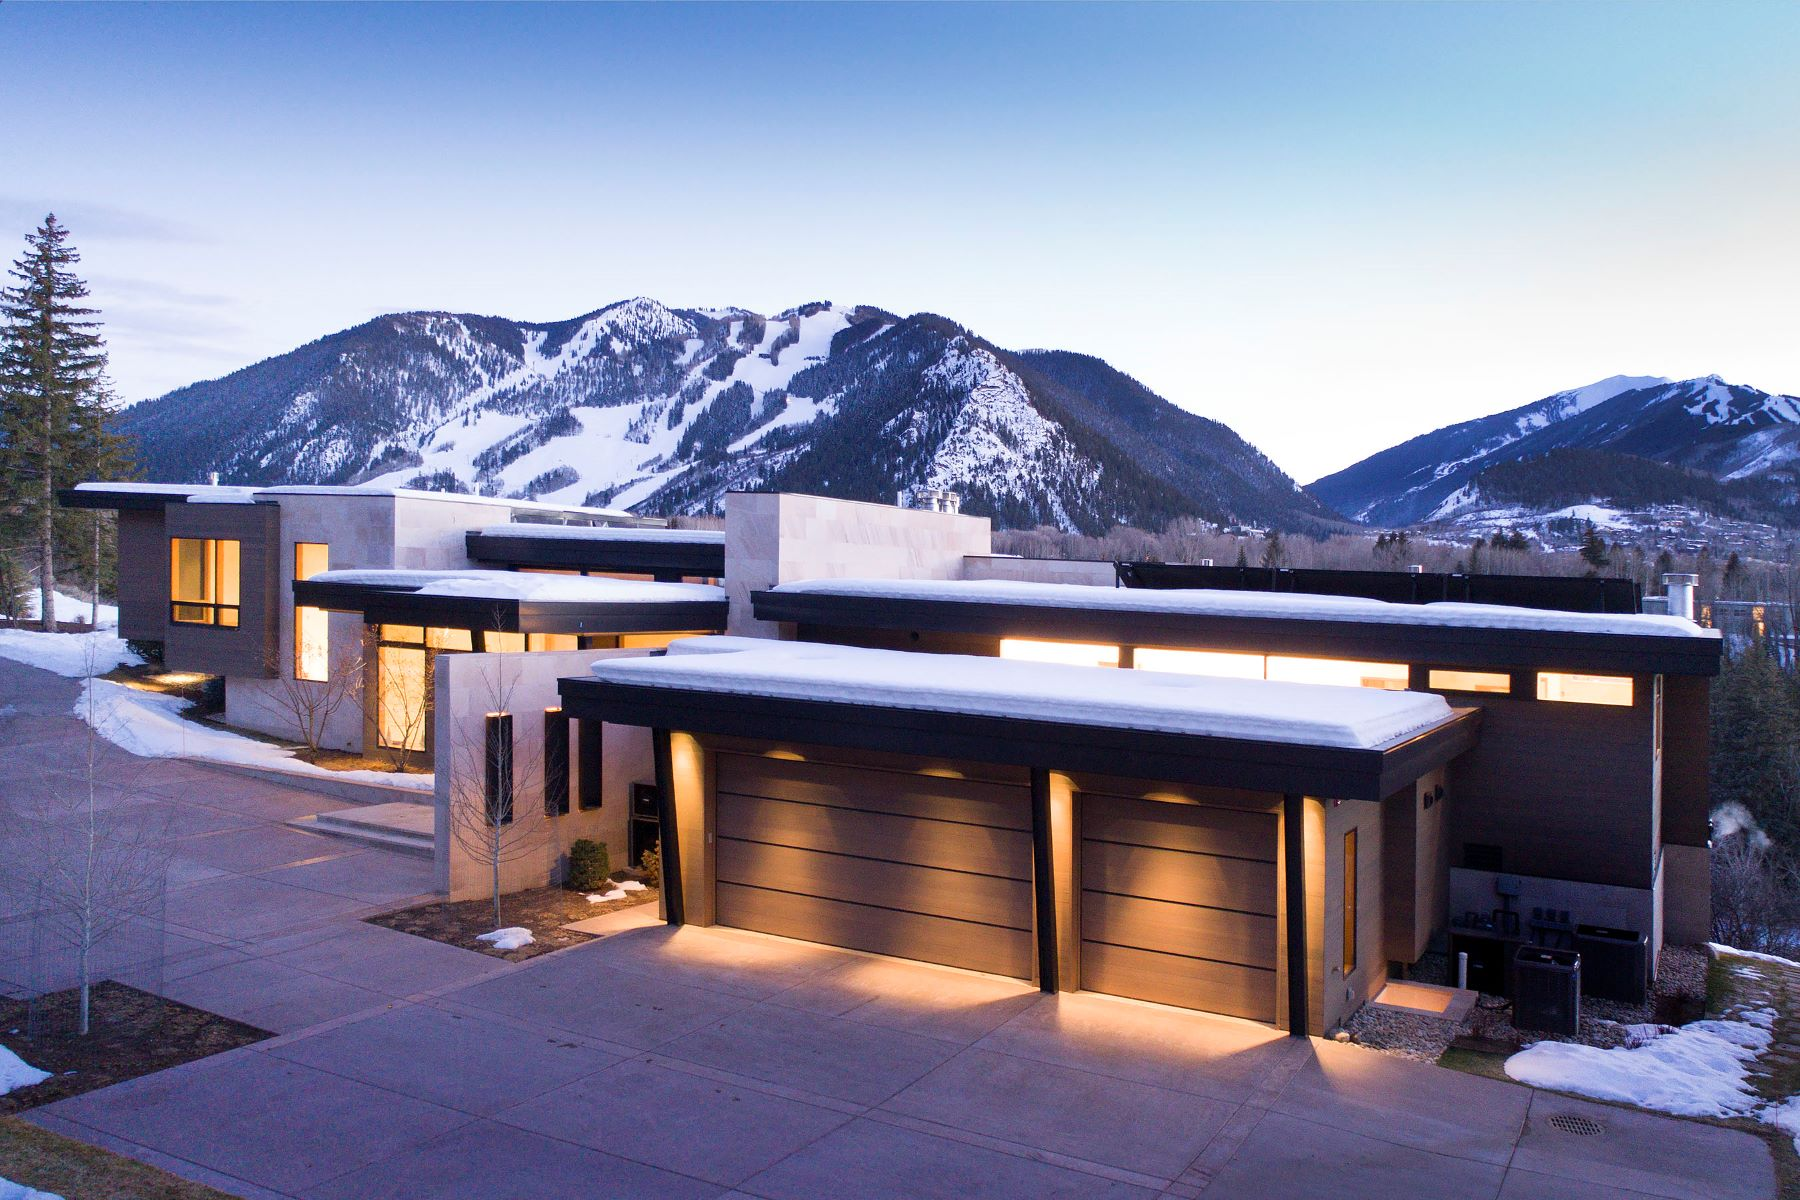 Moradia para Venda às New Willoughby Way Contemporary 720 Willoughby Way Red Mountain, Aspen, Colorado, 81611 Estados Unidos